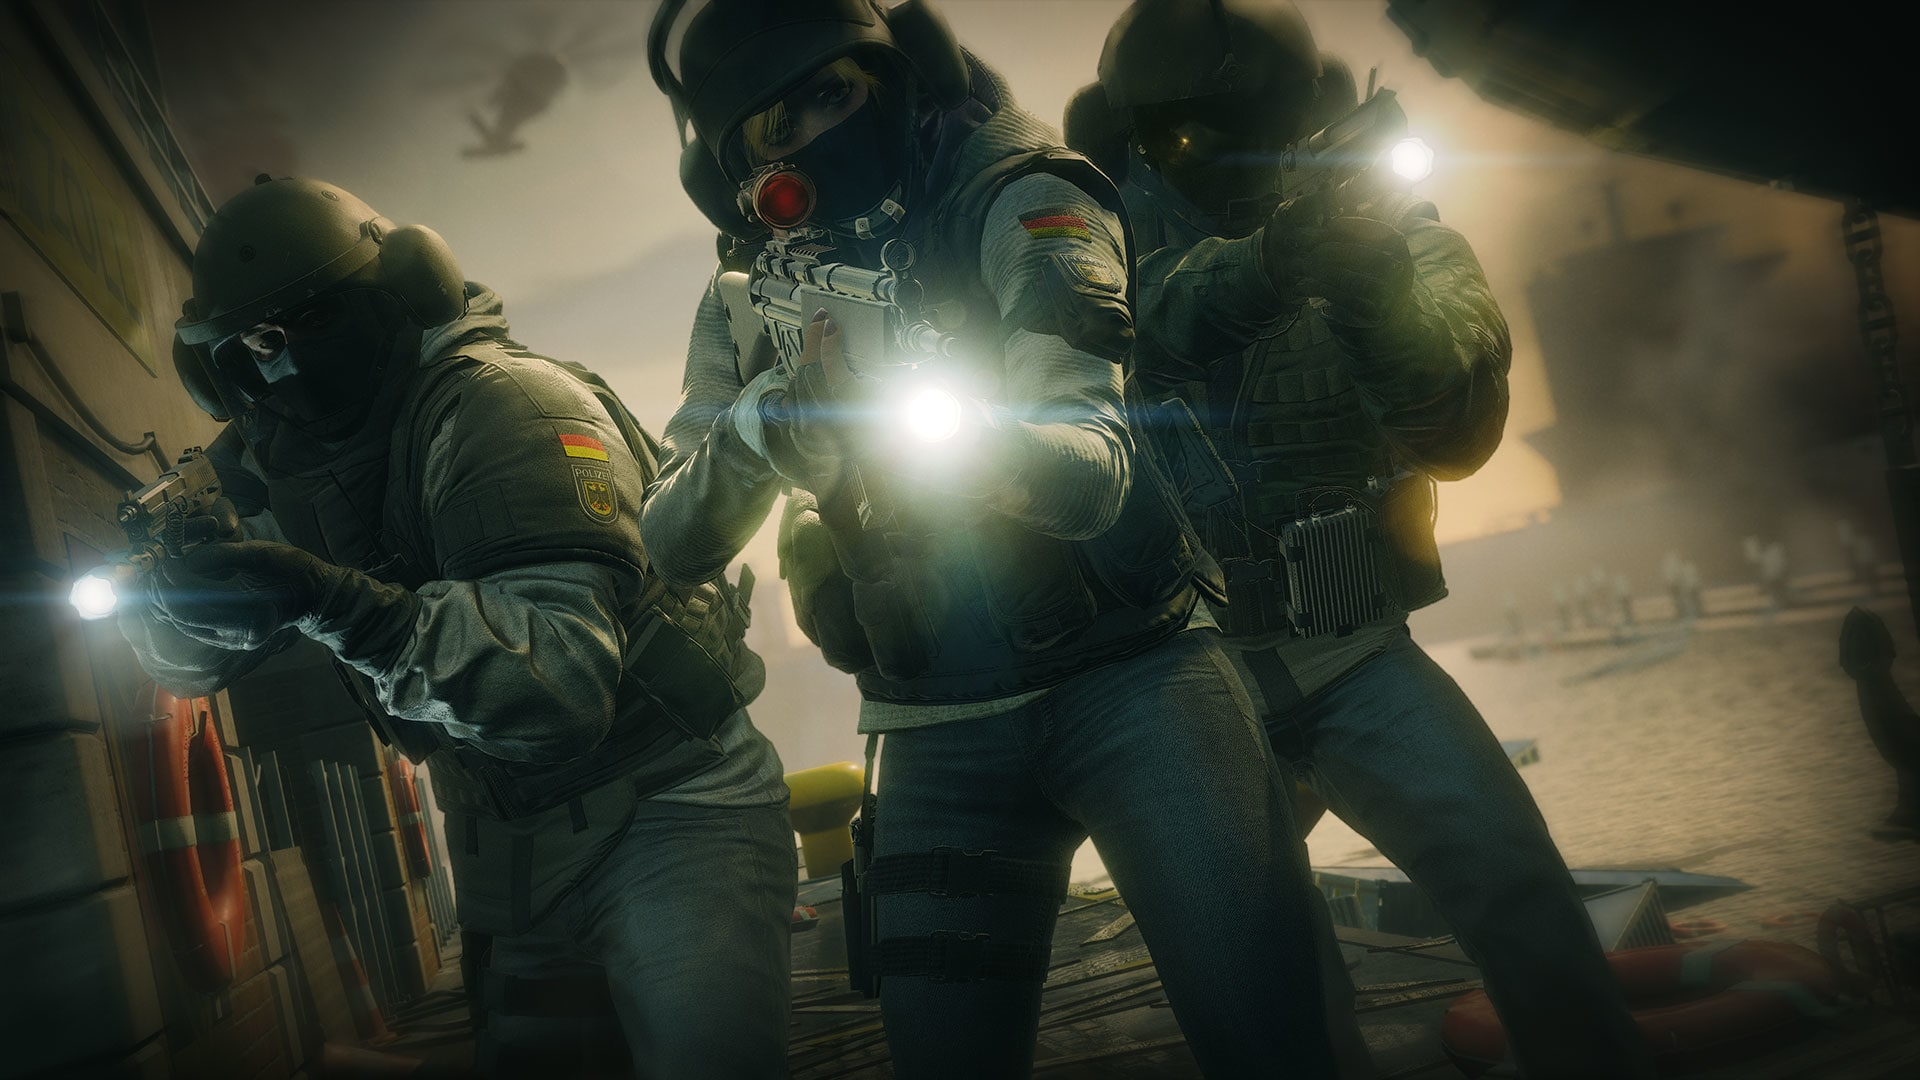 rainbow matchmaking Ubisoft are making another big change to the world of rainbow six siege, with several maps being taken out of the rotation for both ranked and casual kick off with the introduction of operation blood orchid, and at the same time players will lose the ability to select map preferences in pvp matchmaking.